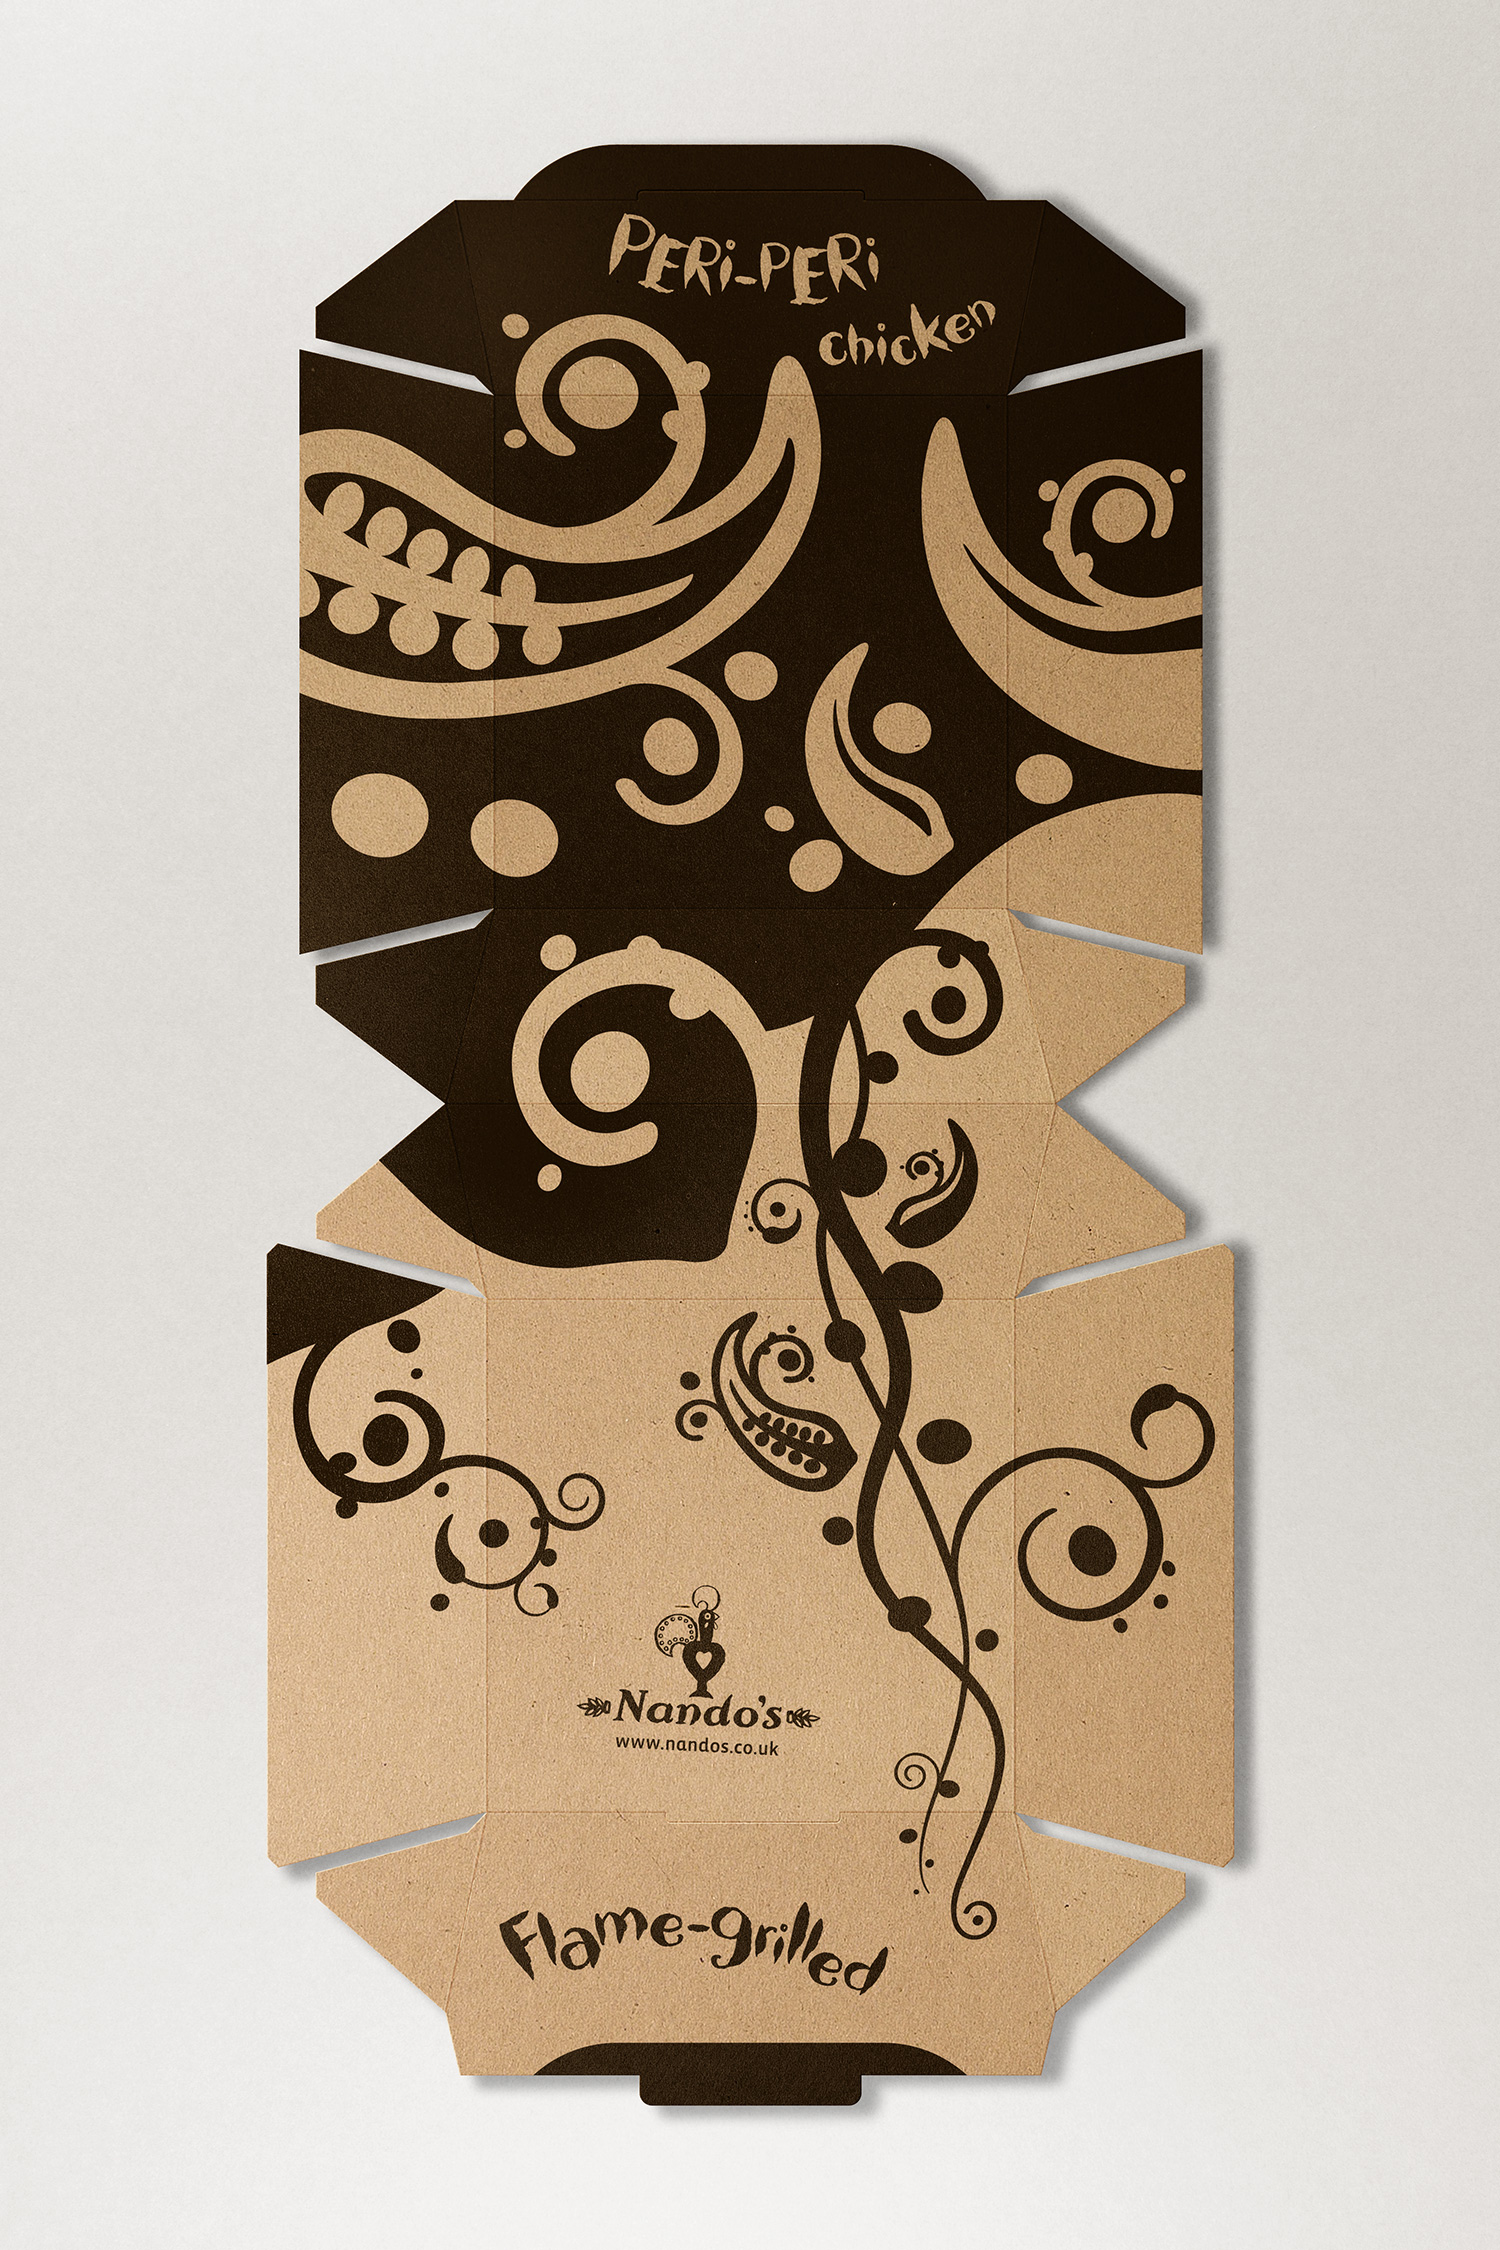 Mascot_Nandos_Takeaway_Packaging_2.jpg